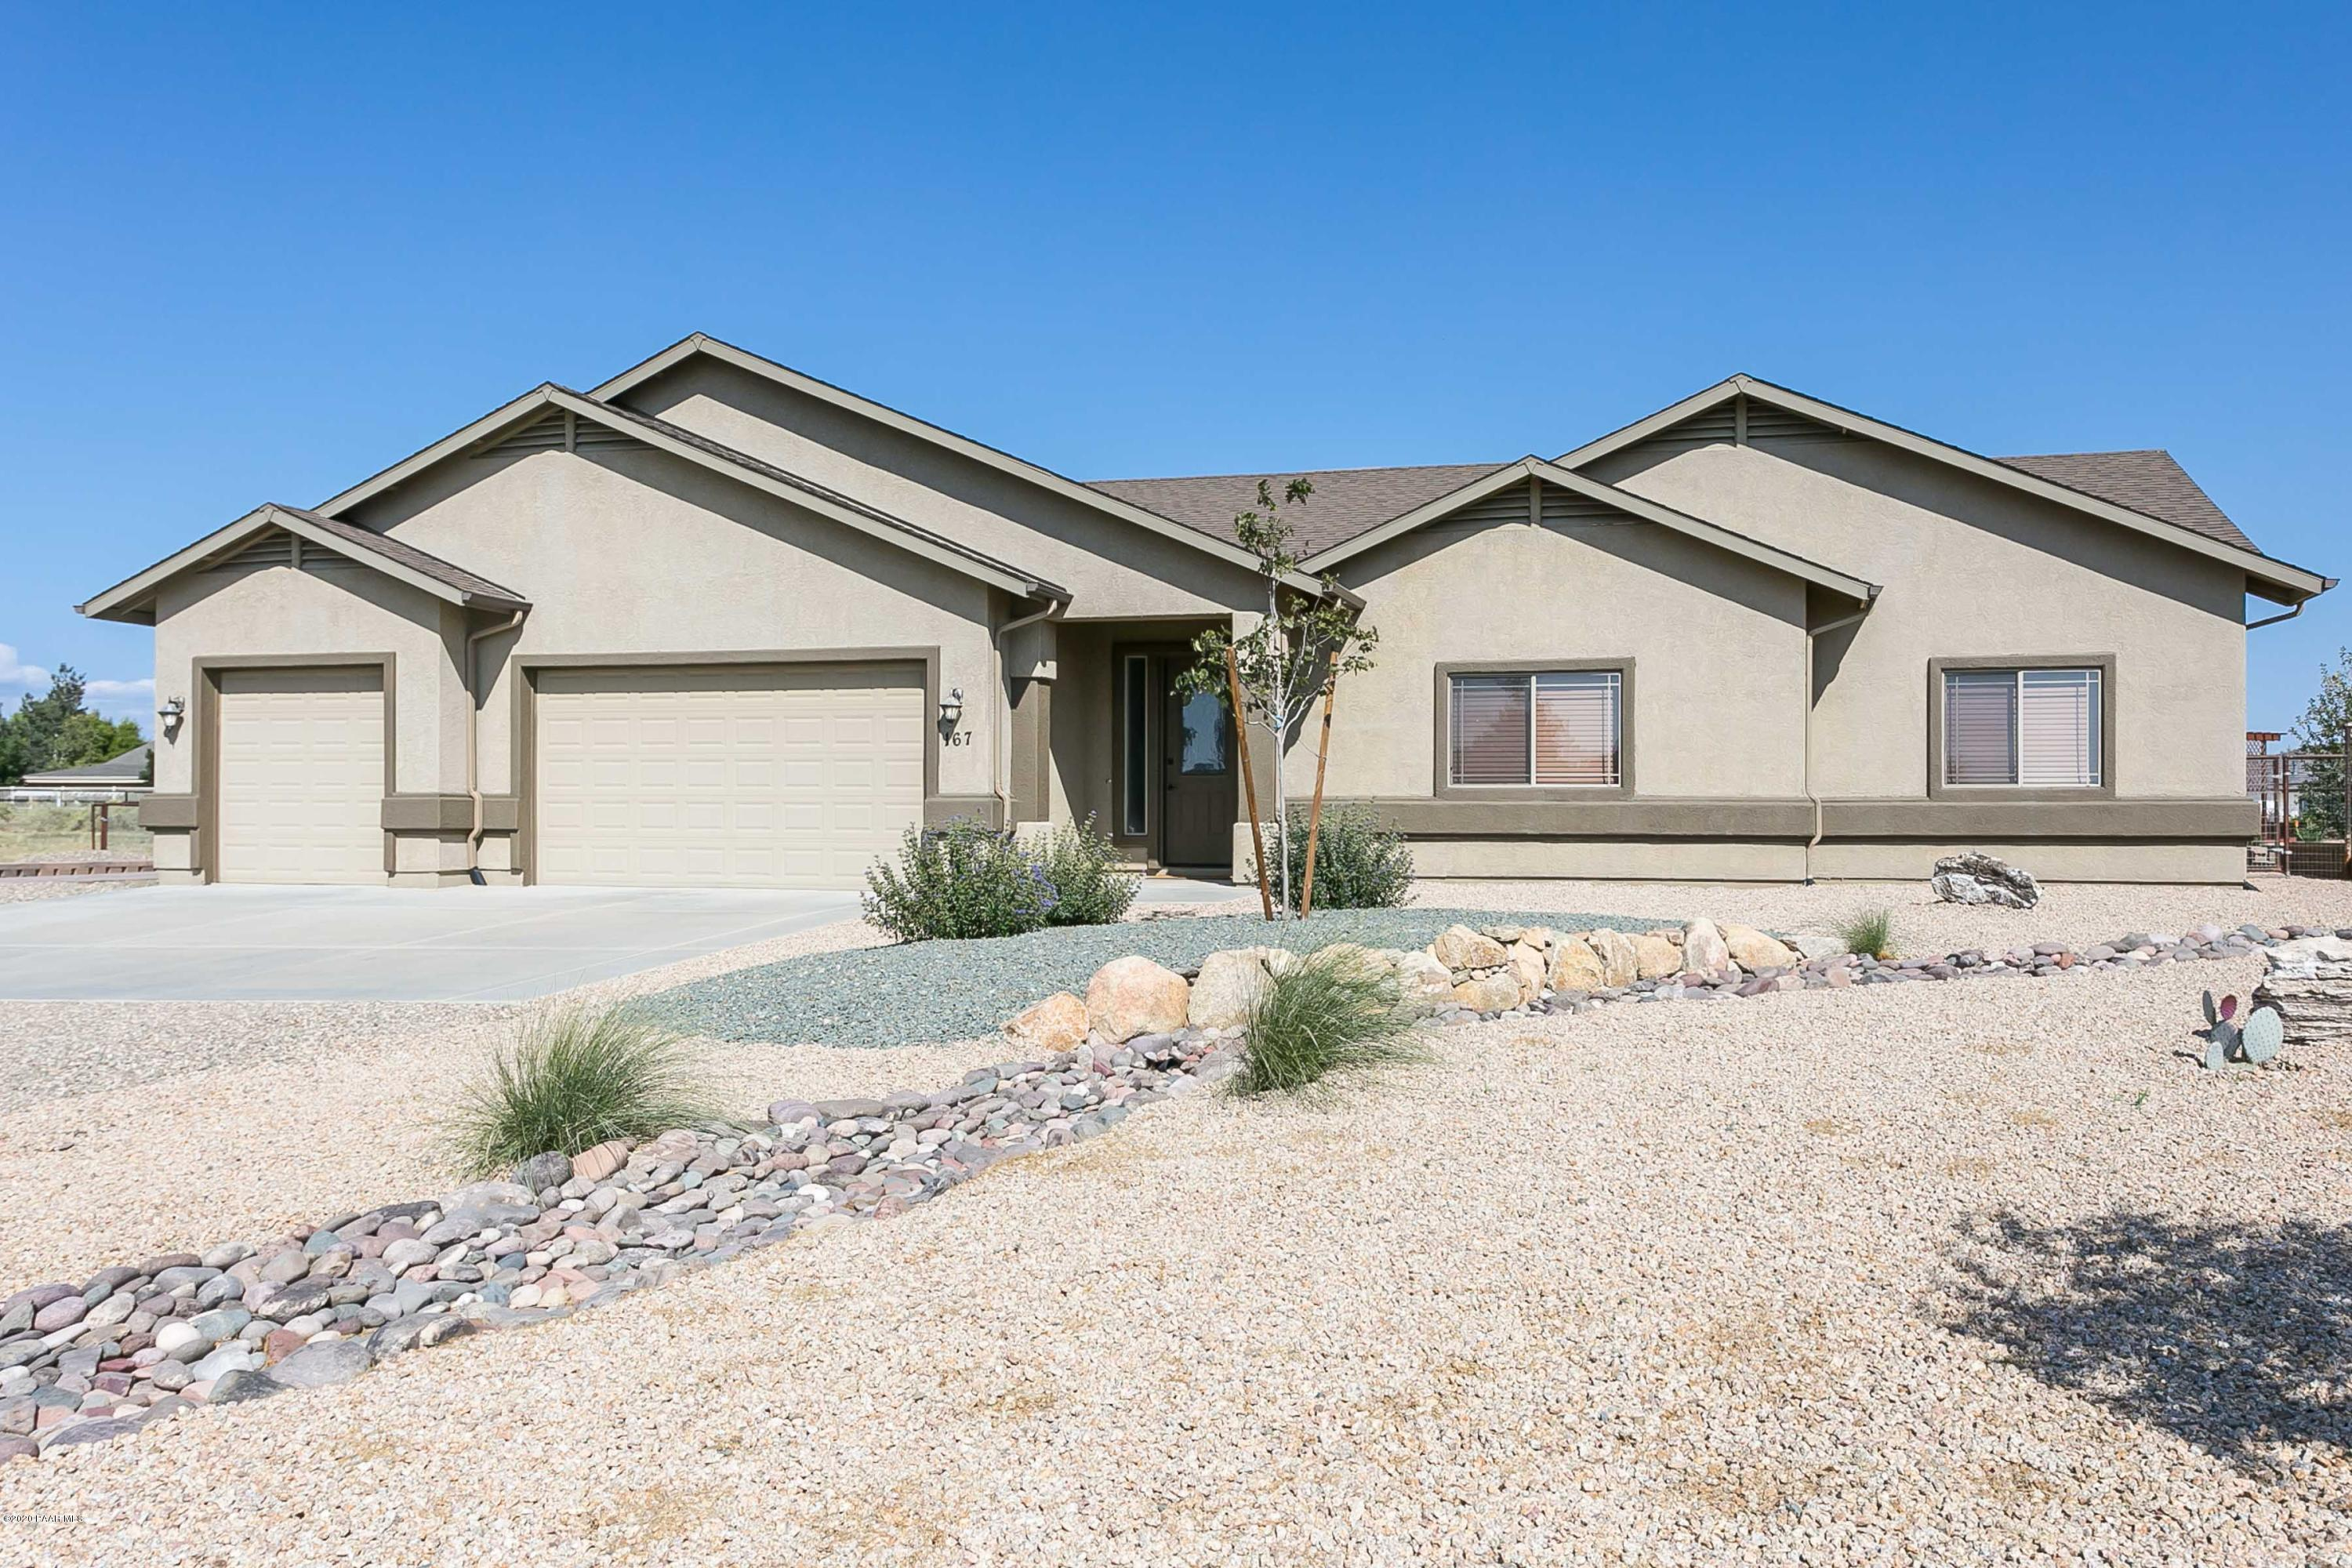 Photo of 167 Sycamore Vista, Chino Valley, AZ 86323